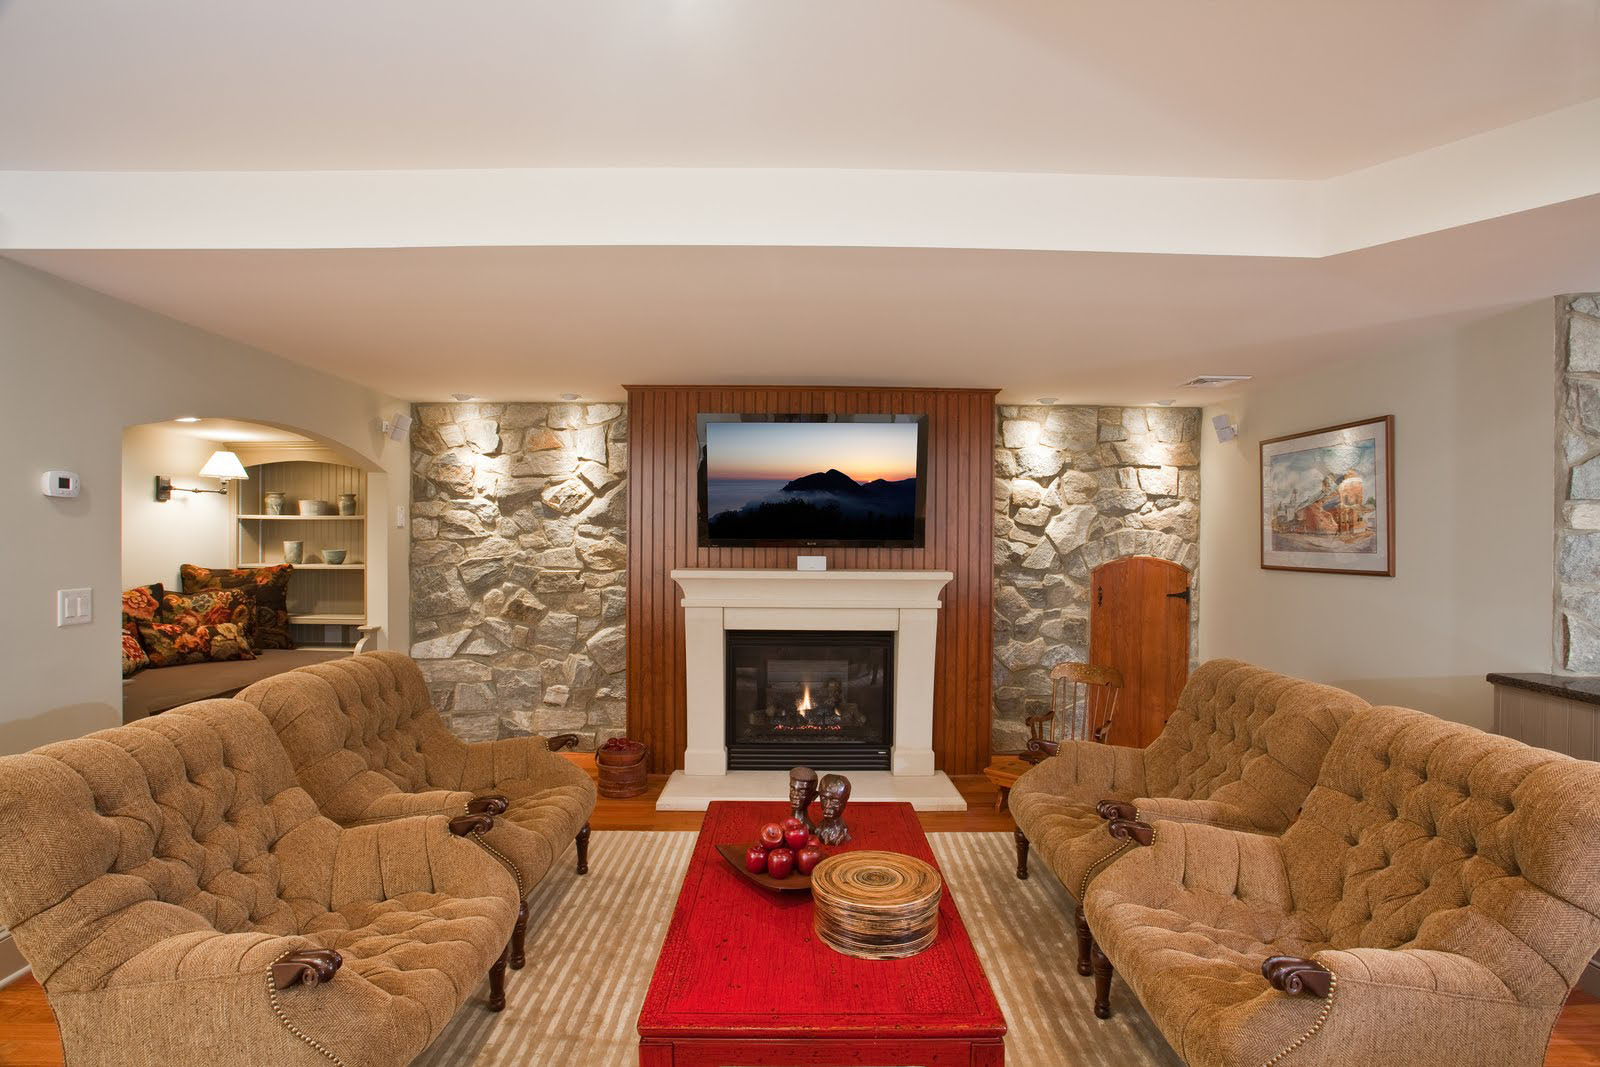 Residential Basement with Stone Walls